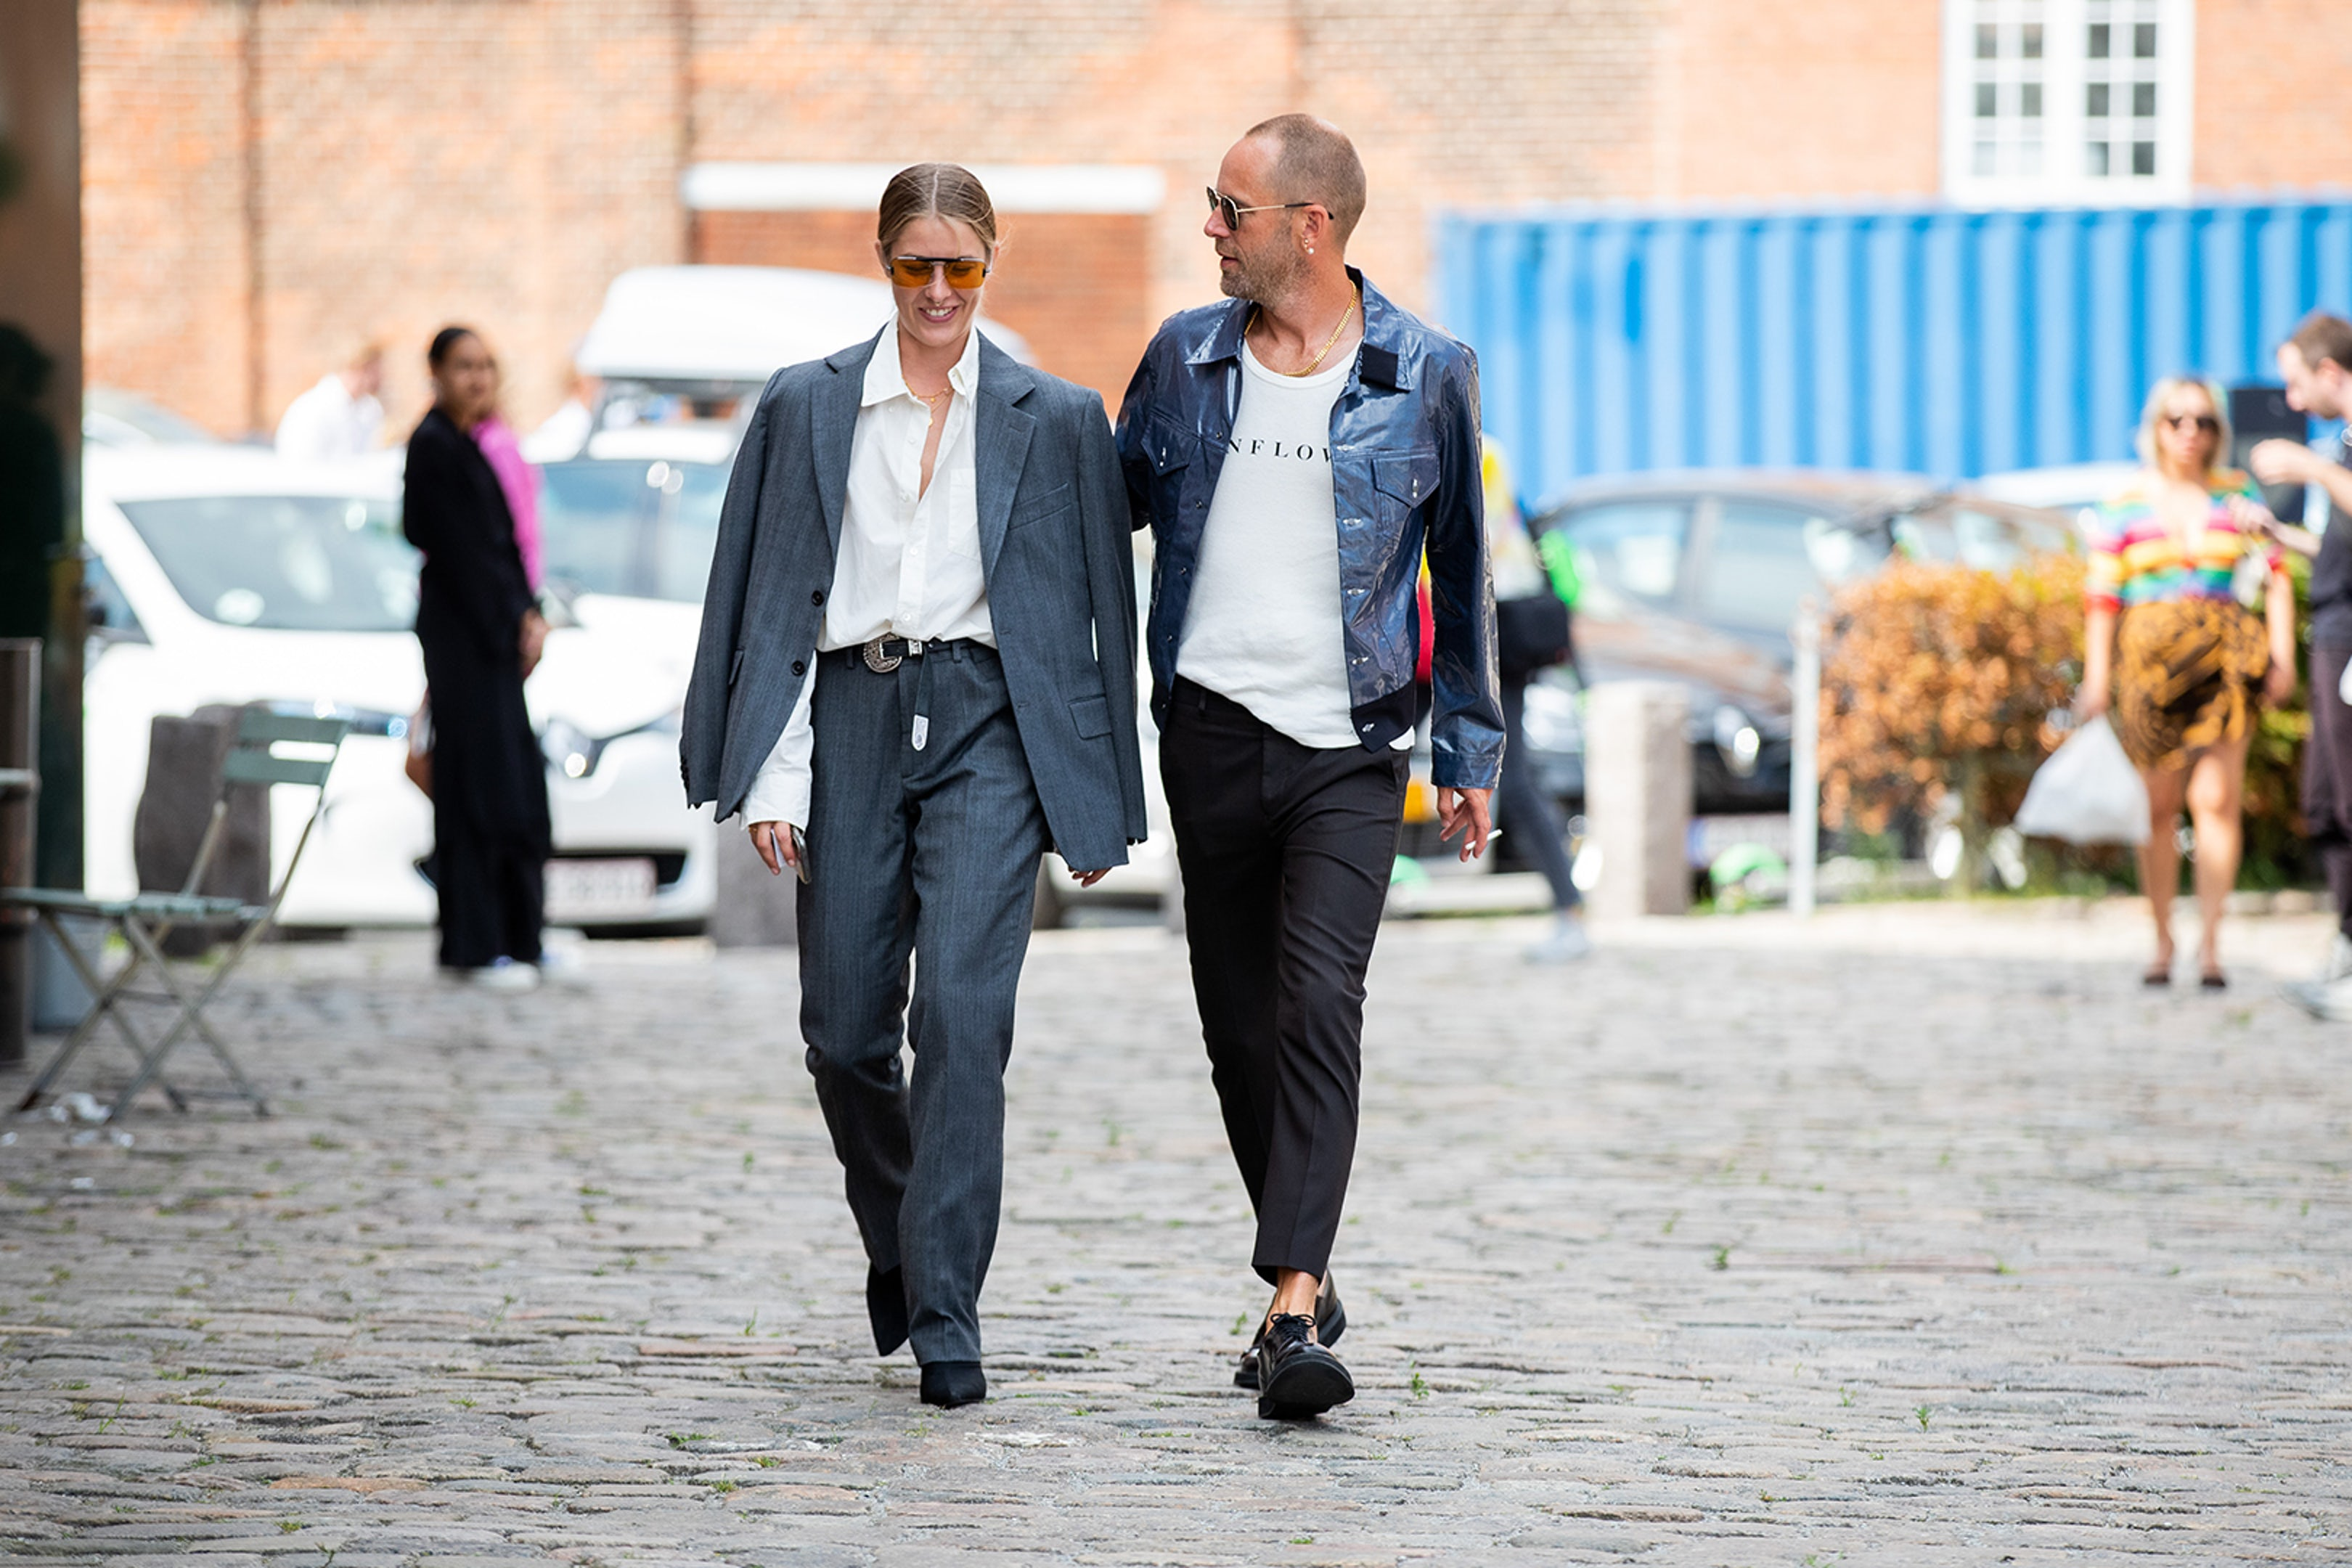 copenhagen fashion week couple 7